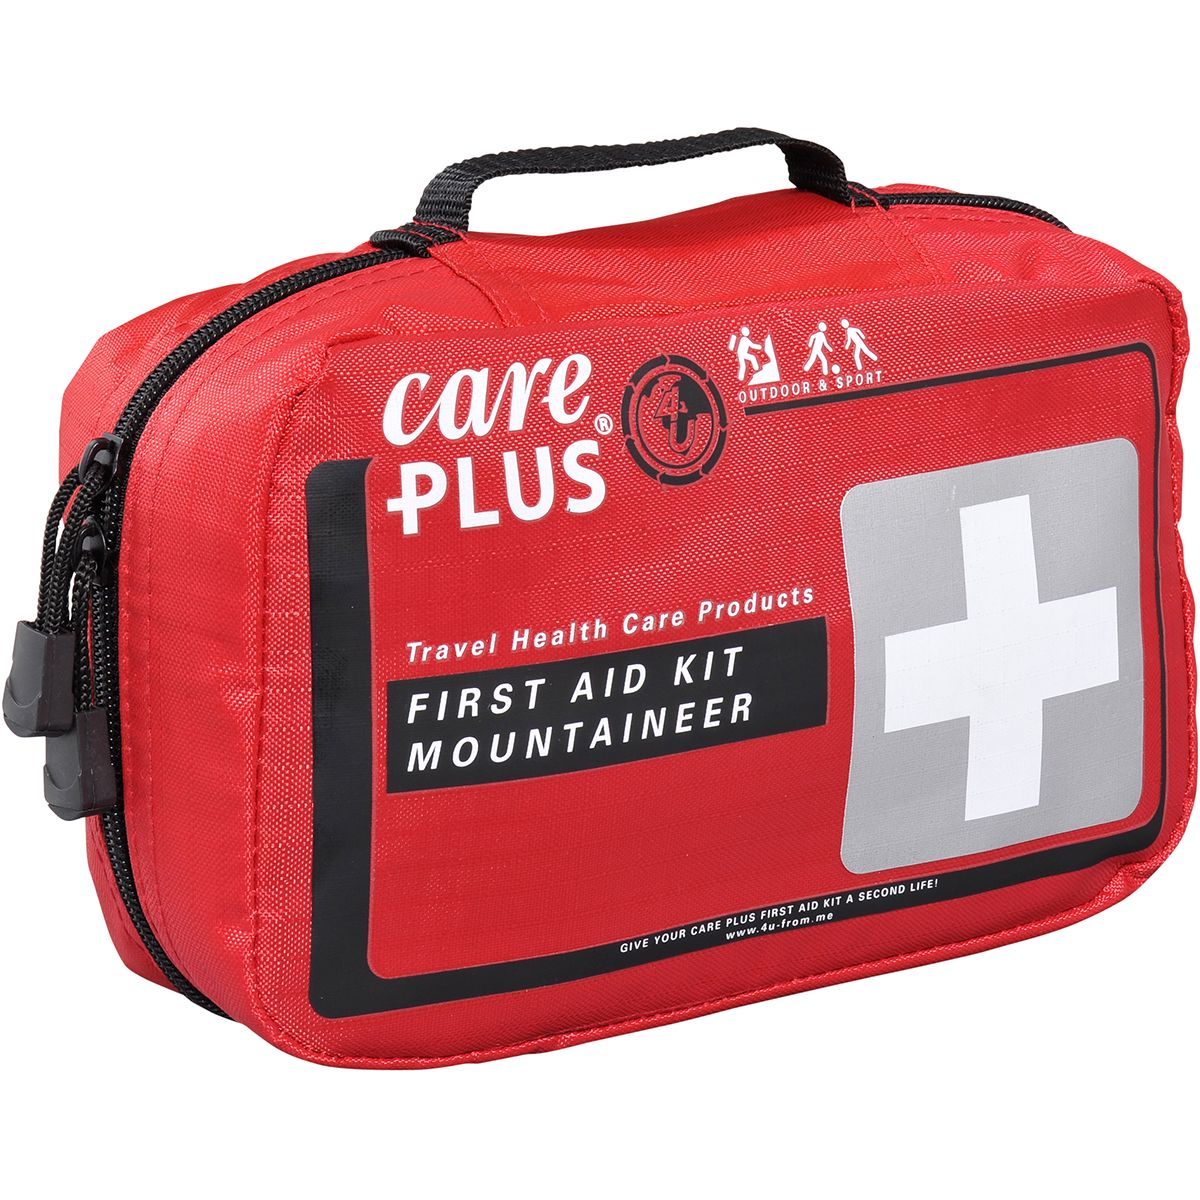 Image of Care Plus First Aid Kit Mountaineer (Weiß)